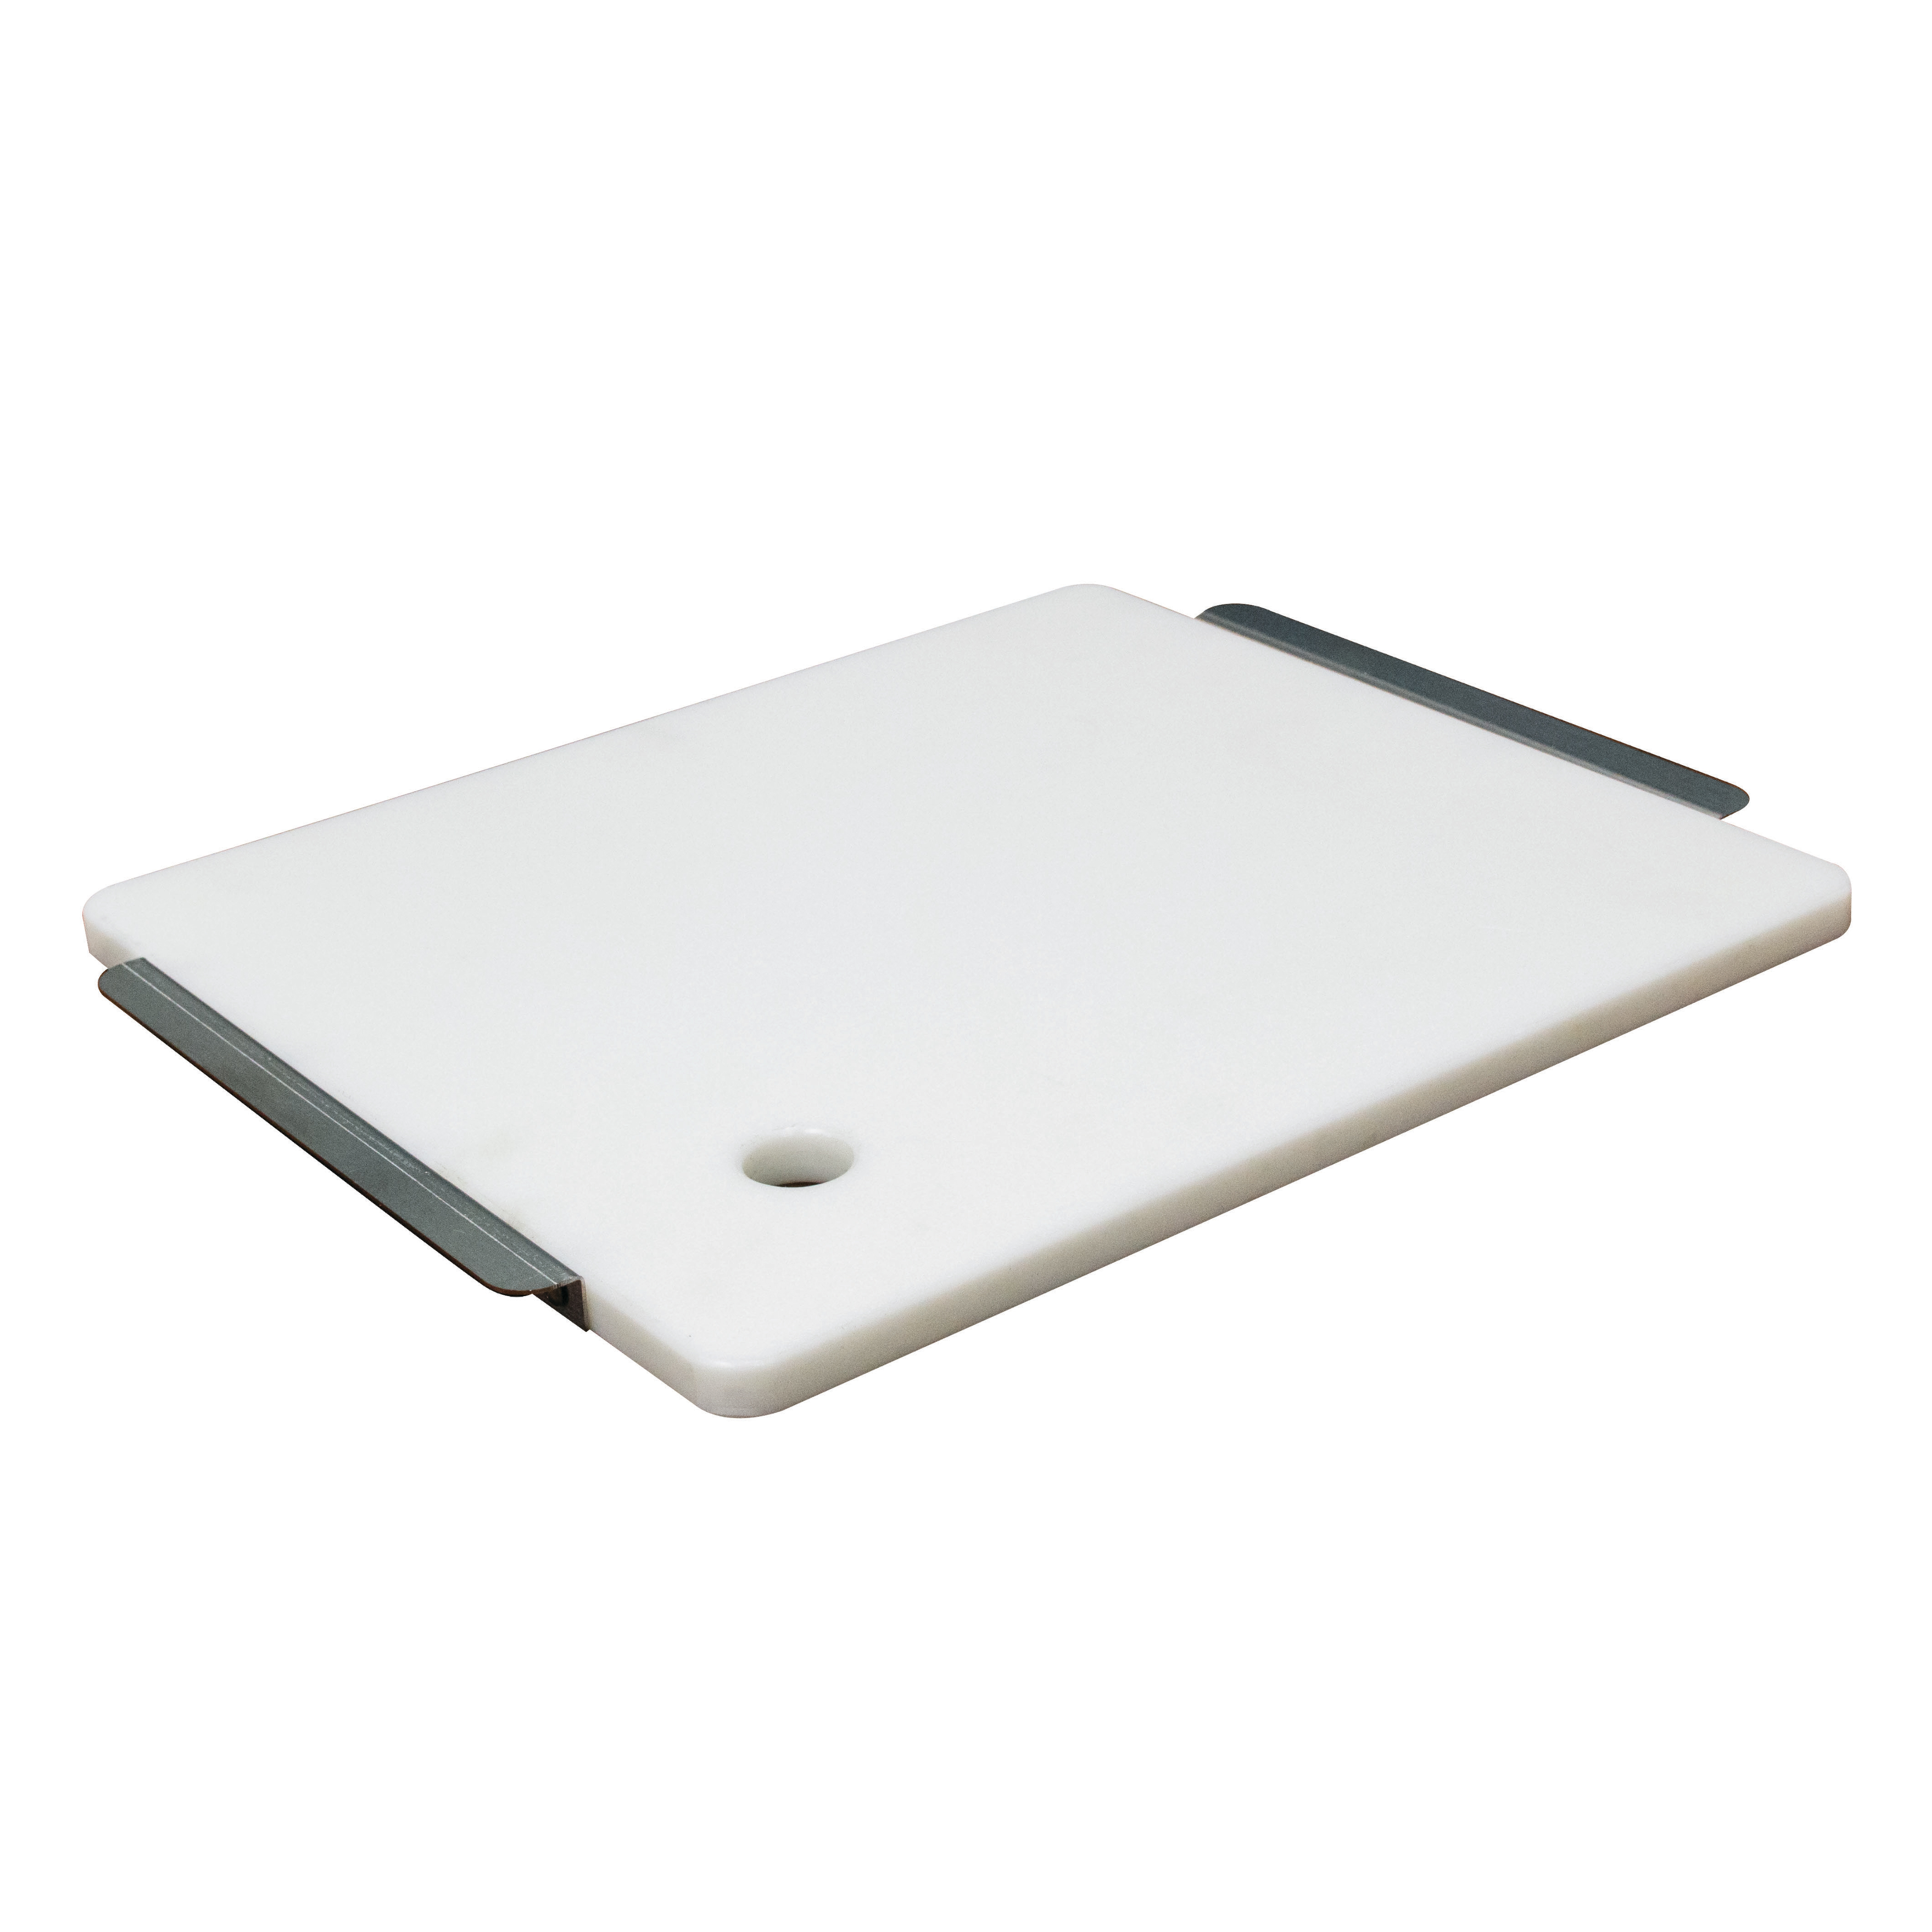 Advance Tabco K-2CF sink cover